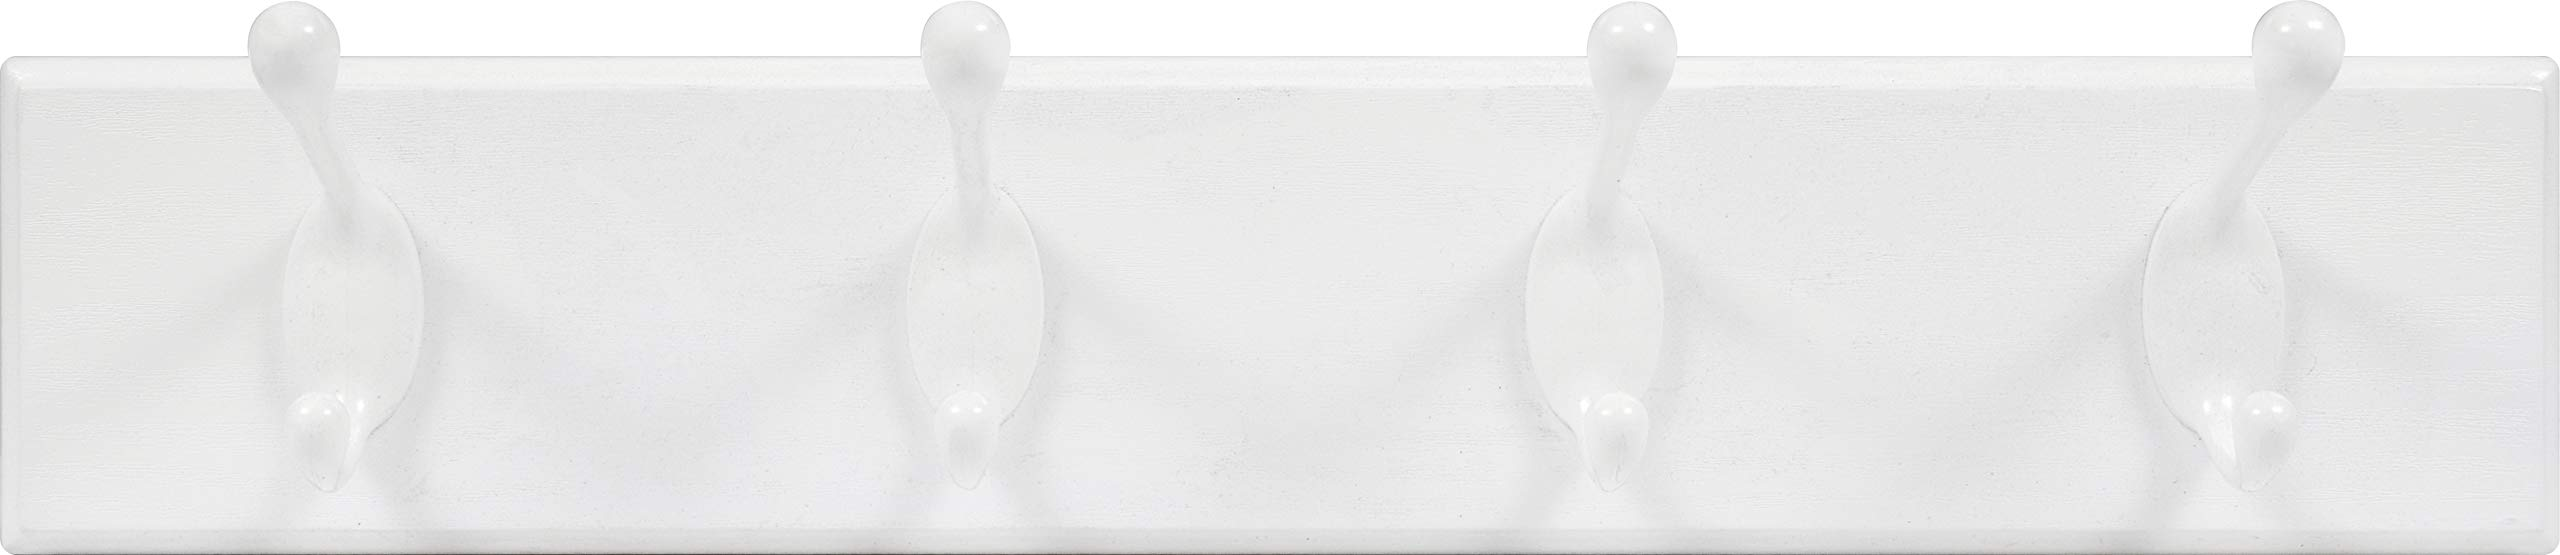 High & Mighty 515701 Tool Free Wall Mounted Coat Rack 18'' with 4 Hooks White